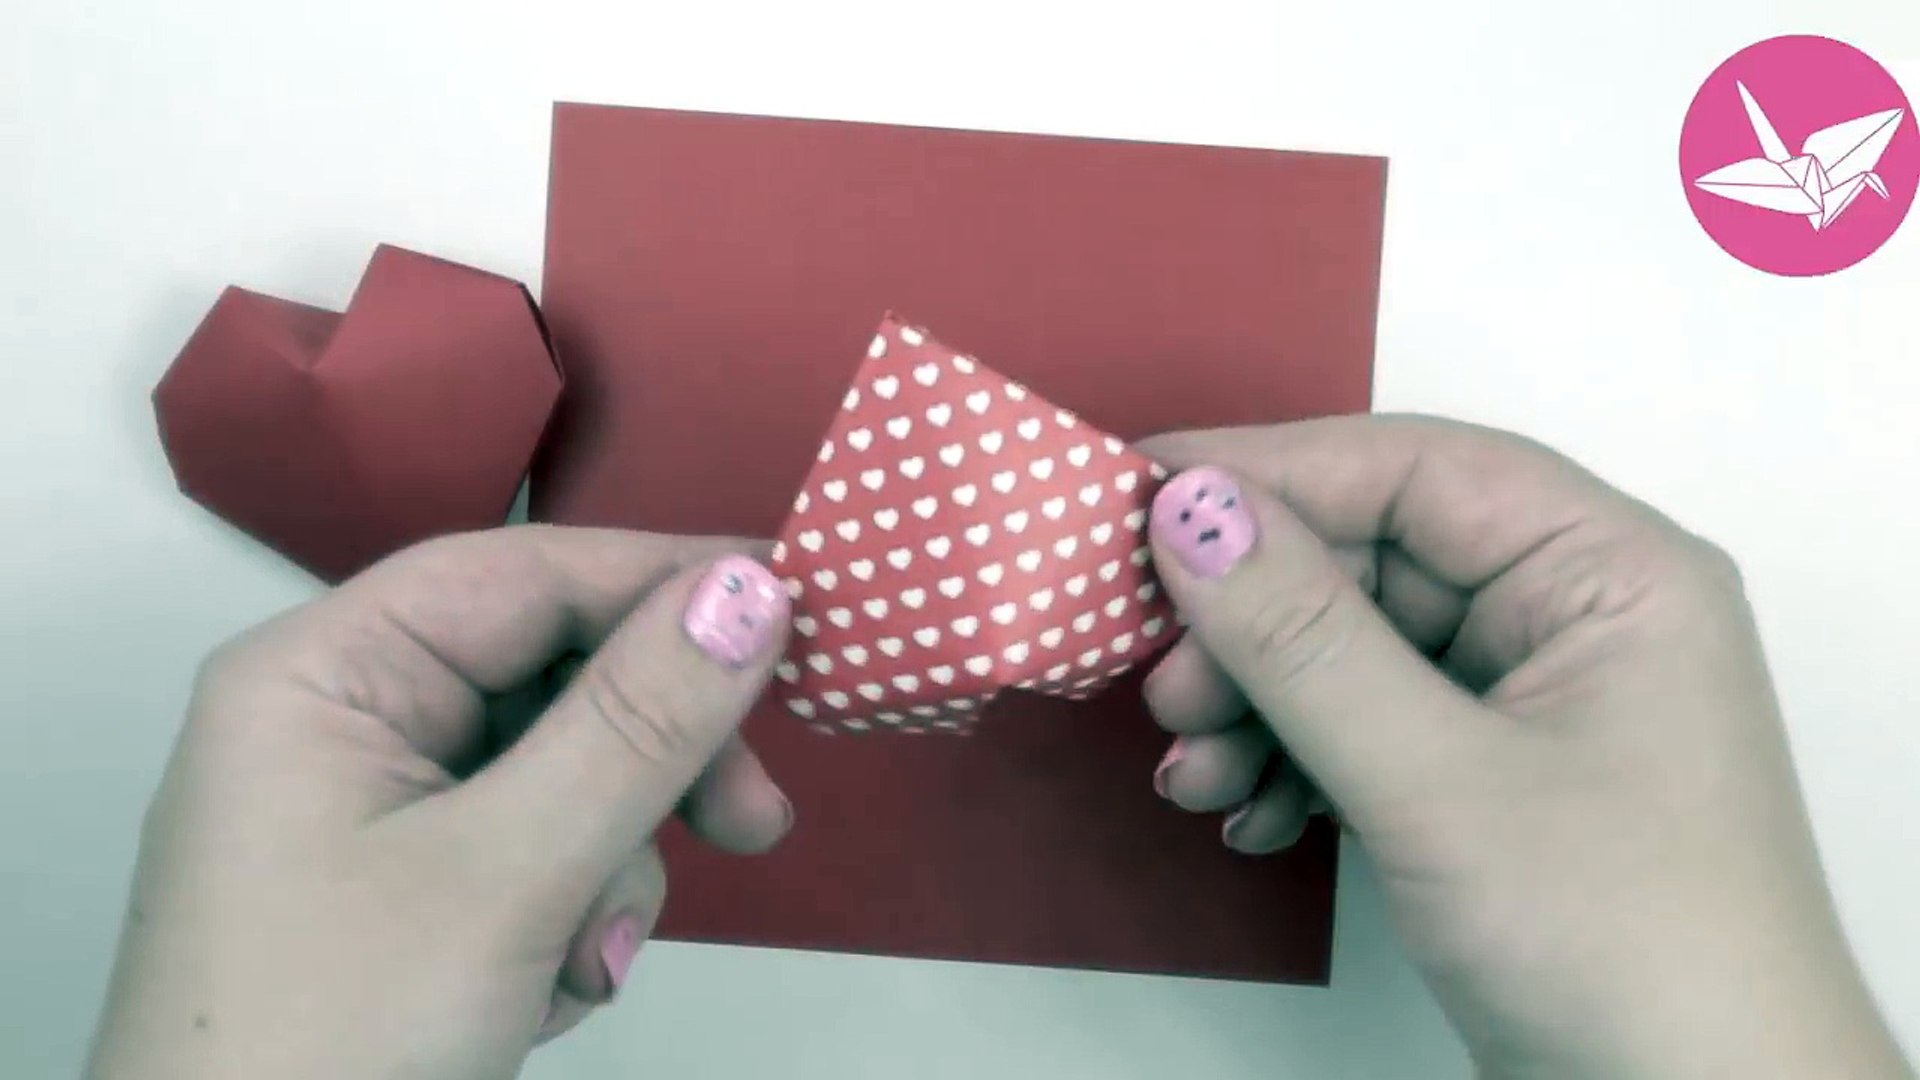 Puffy Heart Origami Origami Puffy Heart Instructions 3d Paper Heart Diy